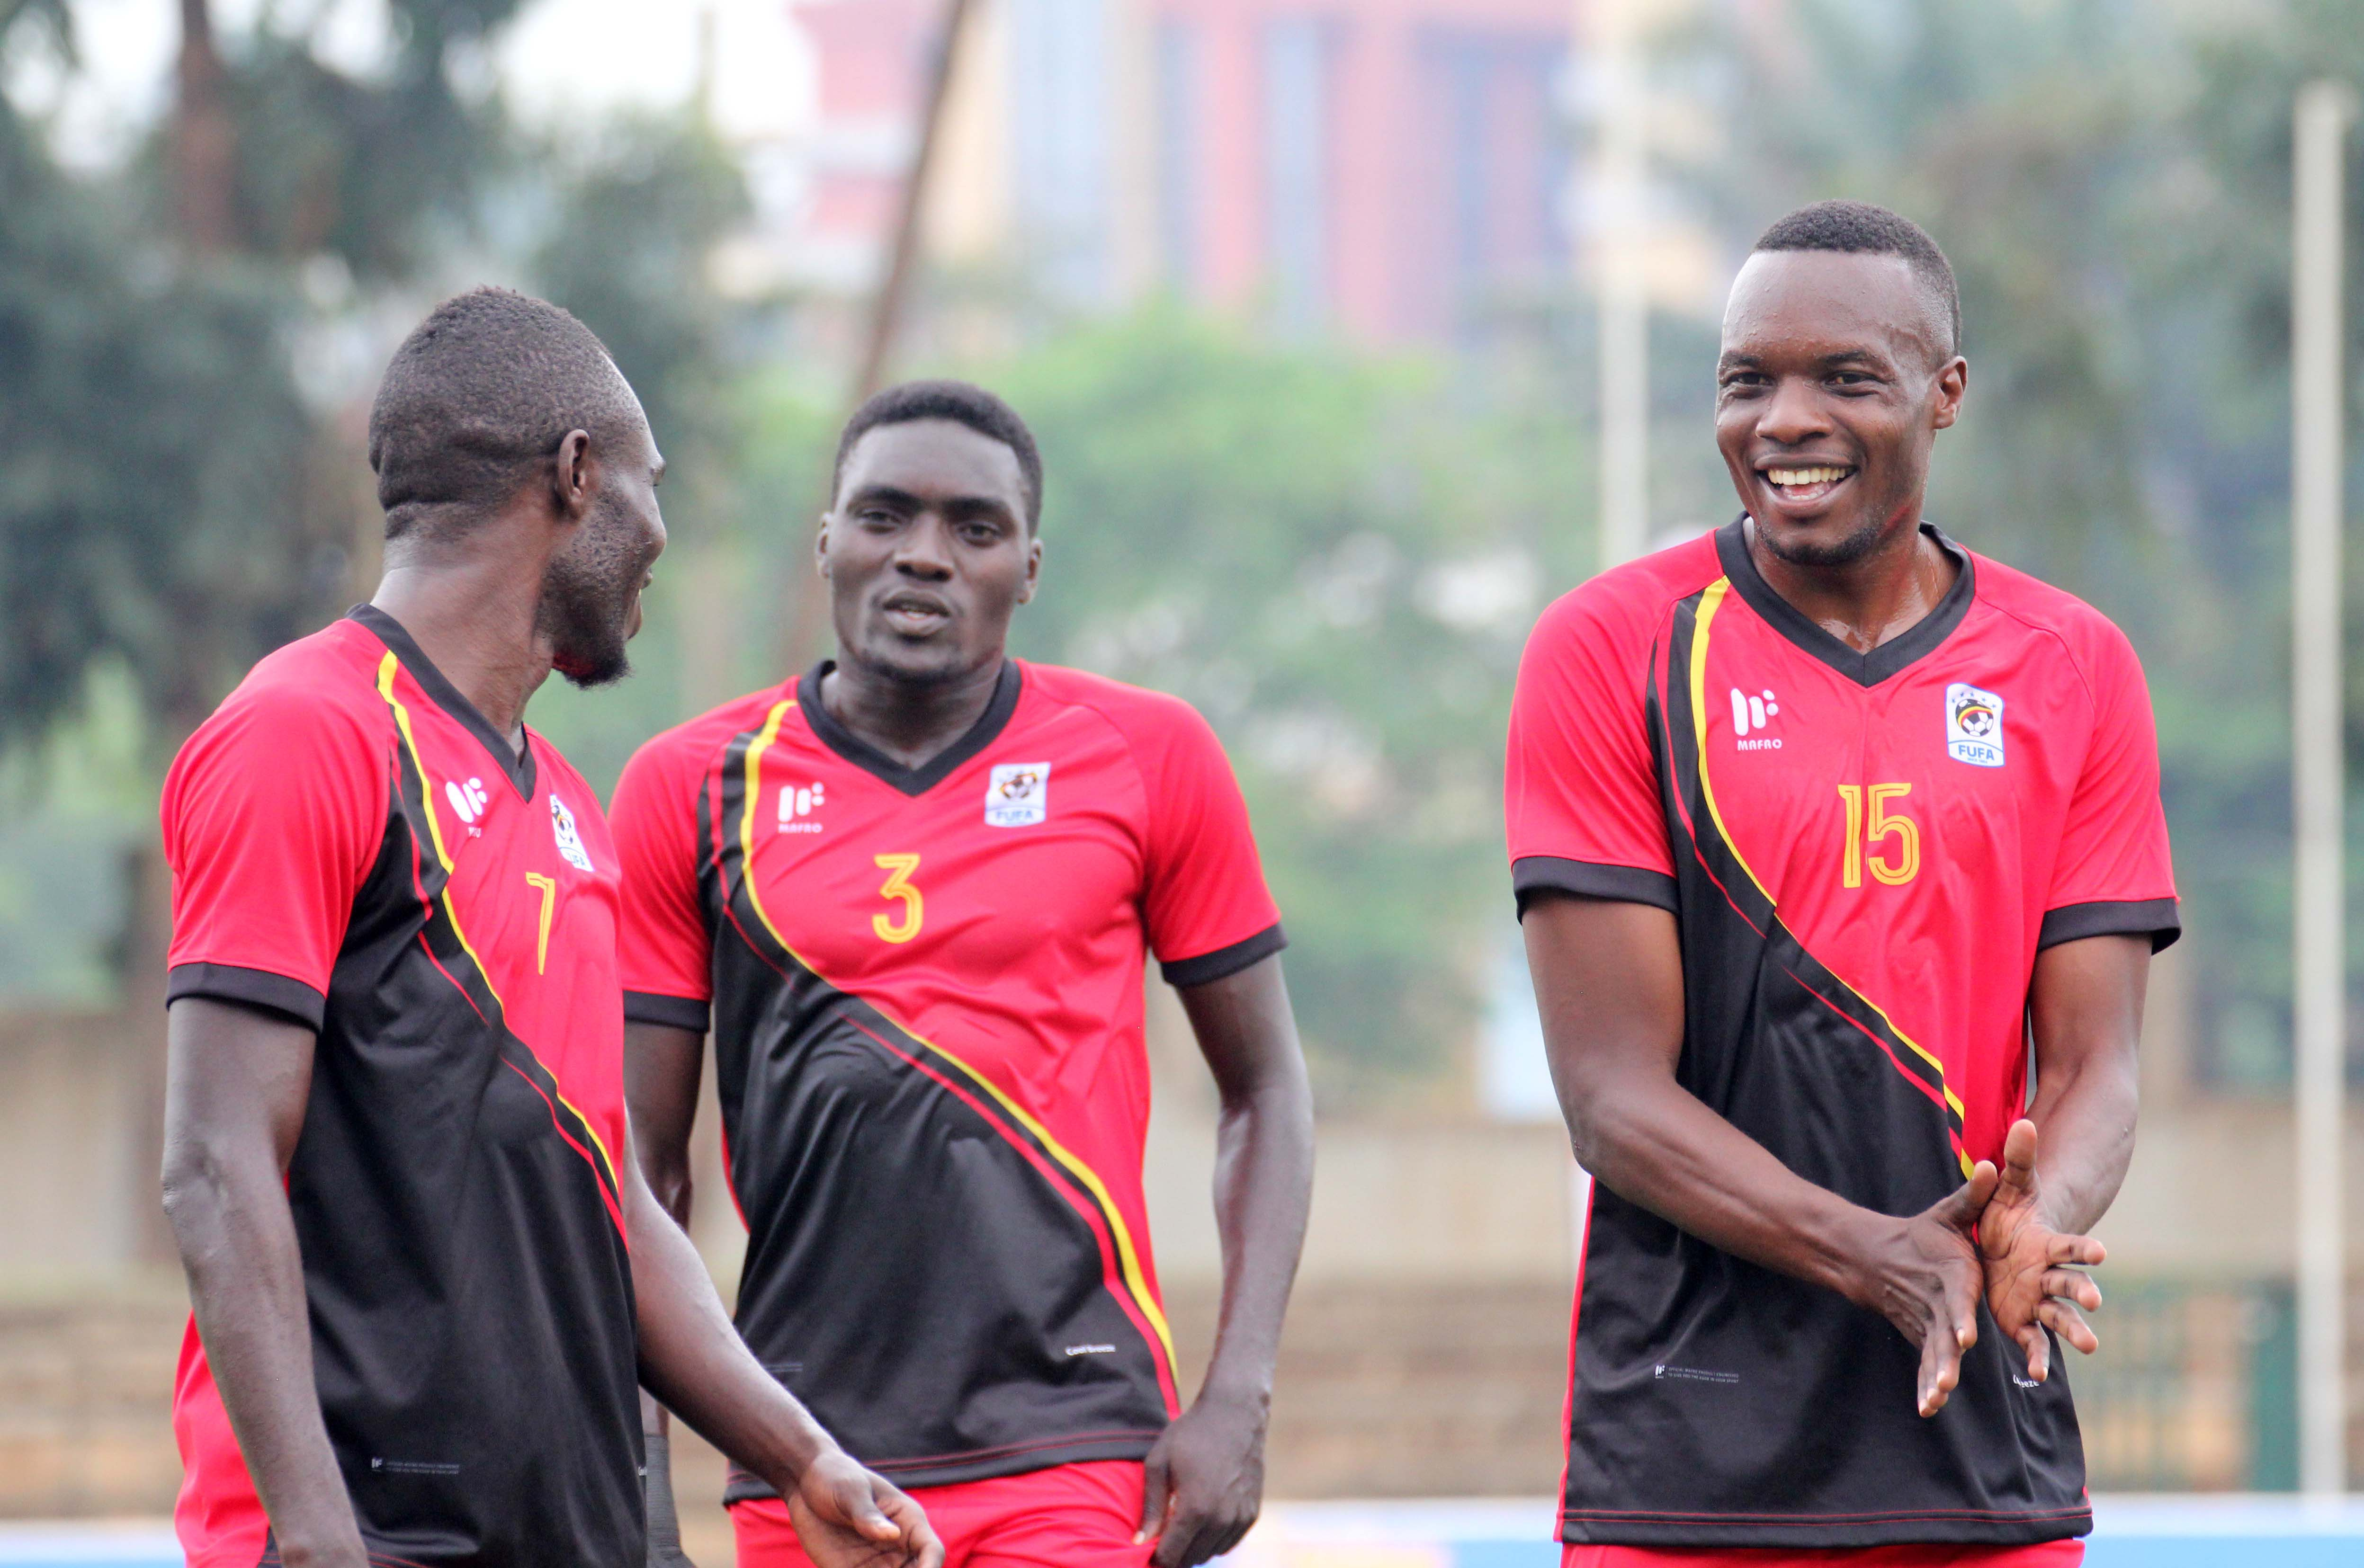 Awanyi (C) and Lwanga (R) are part of the 19 players that have been summoned. (FUFA Photo)